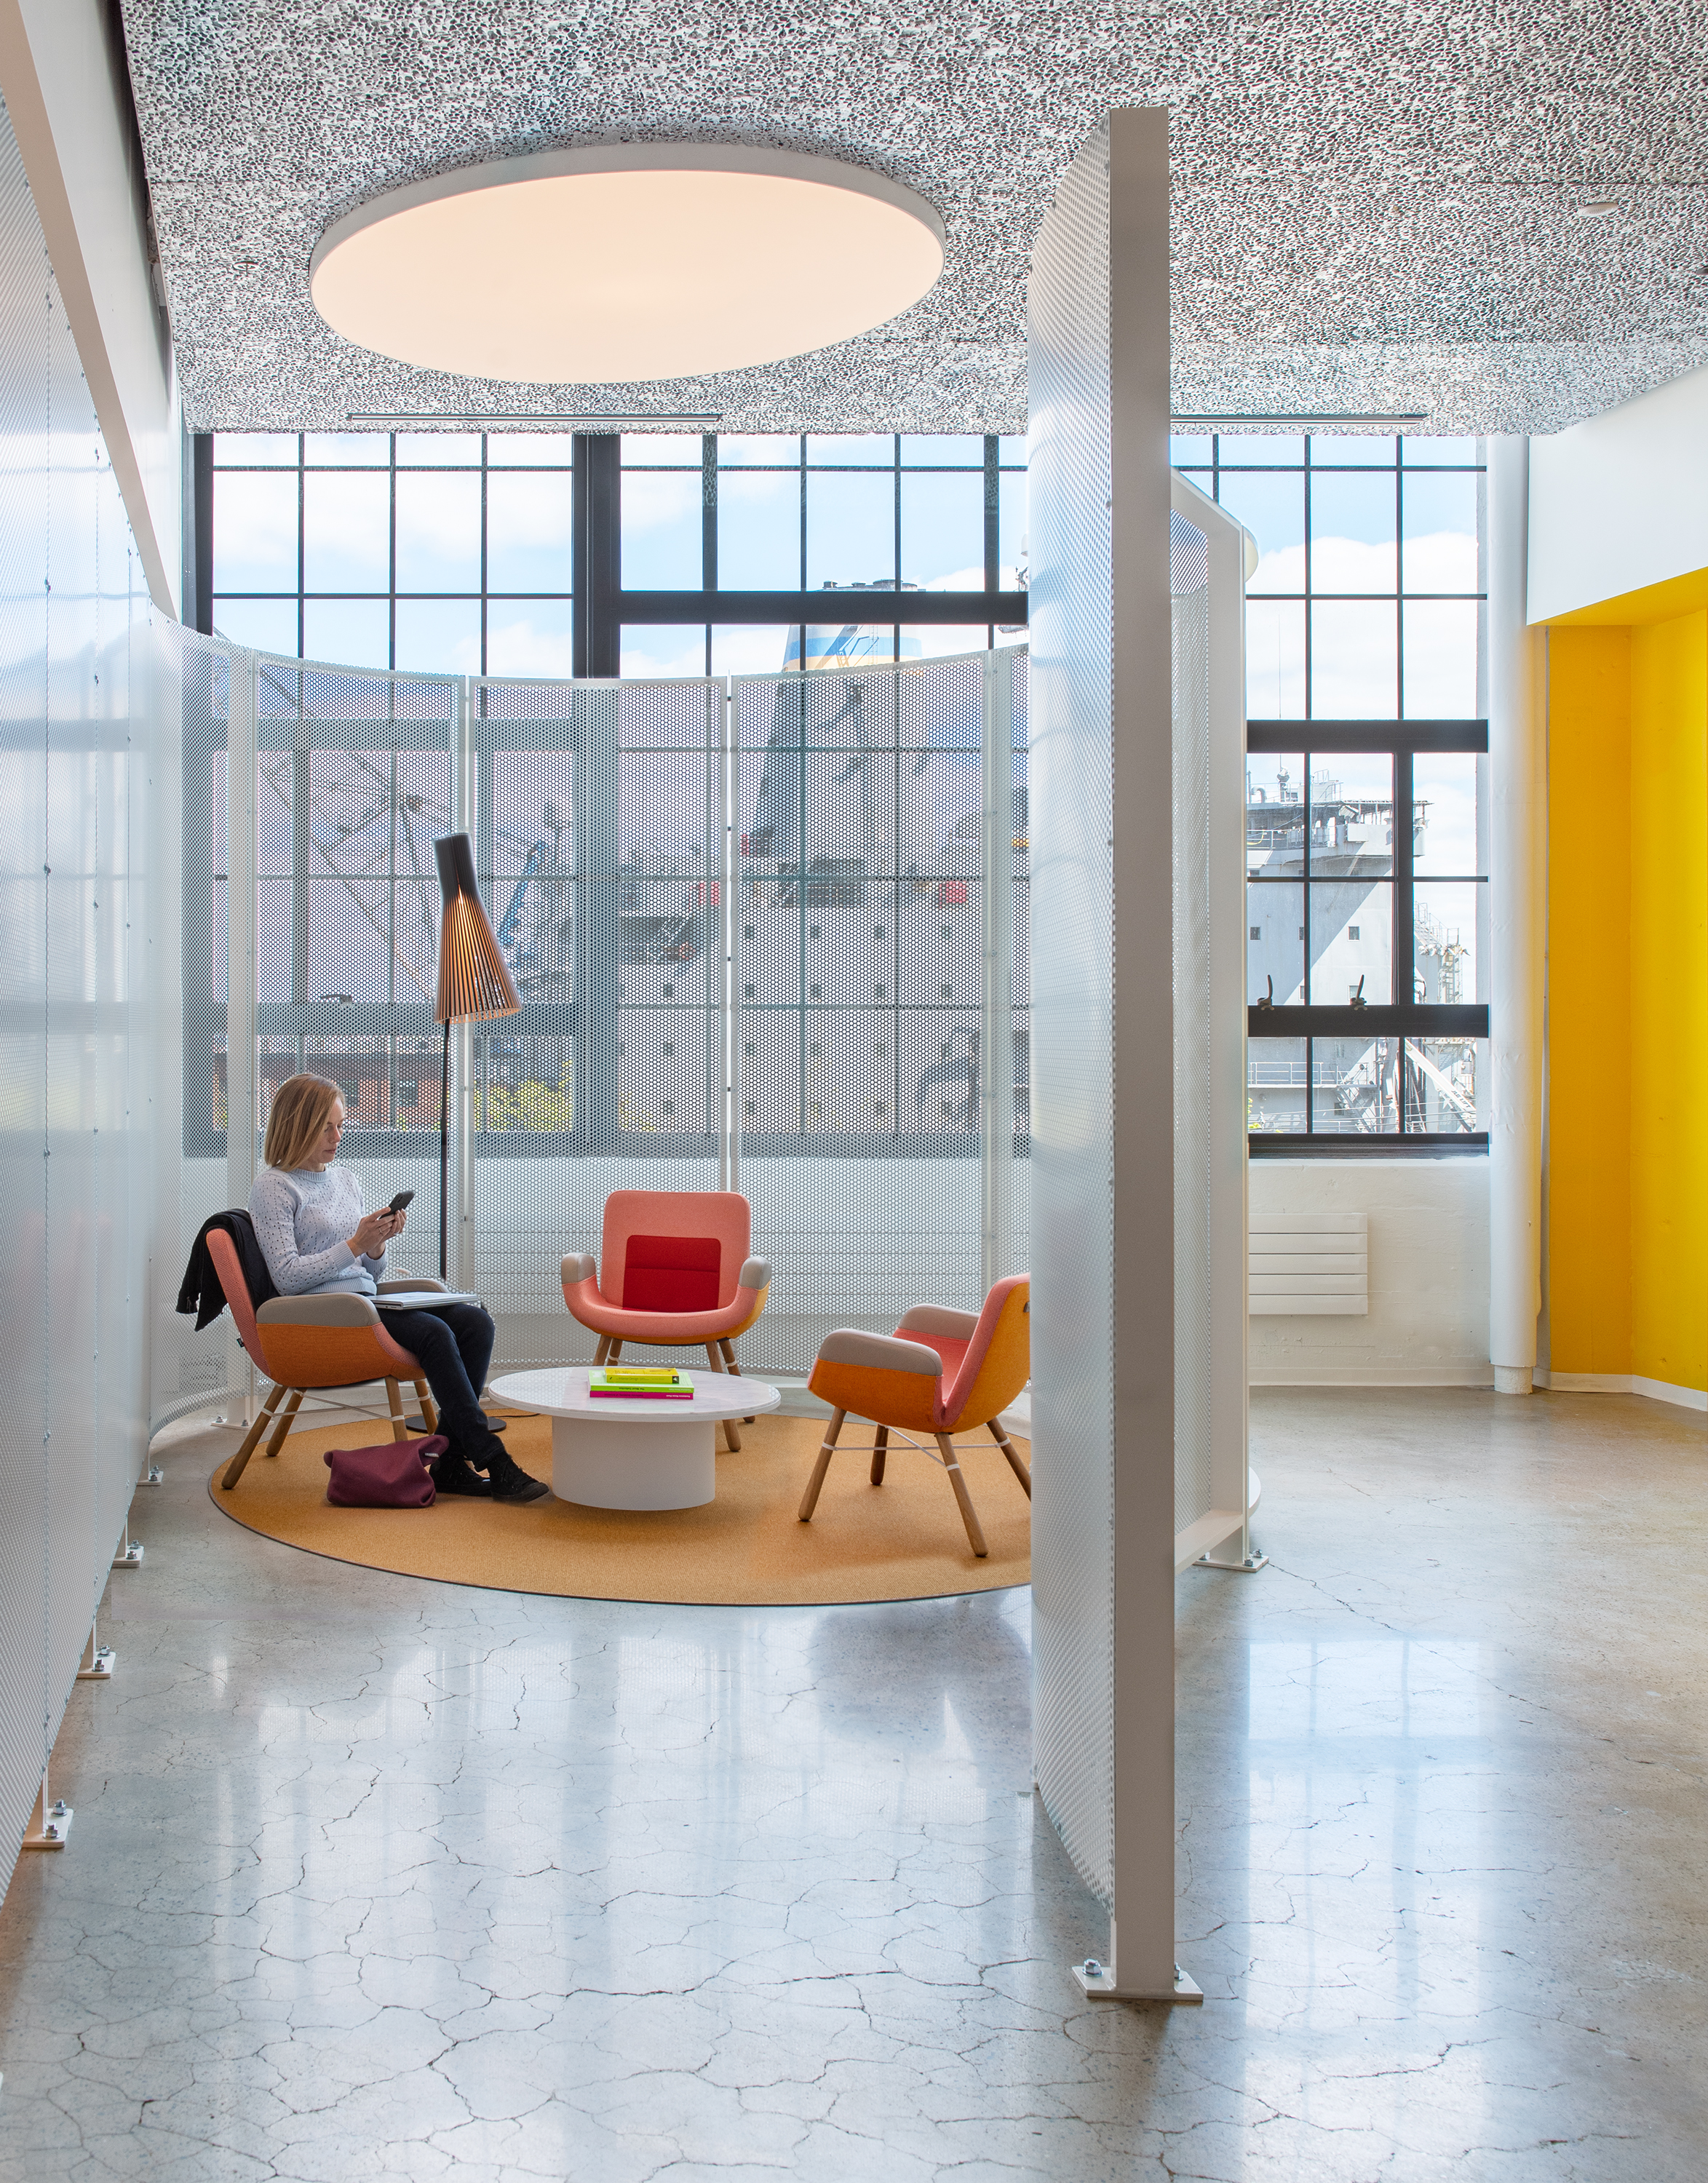 Utile's Autodesk Boston Workspace Expansion featured in AN Interior!